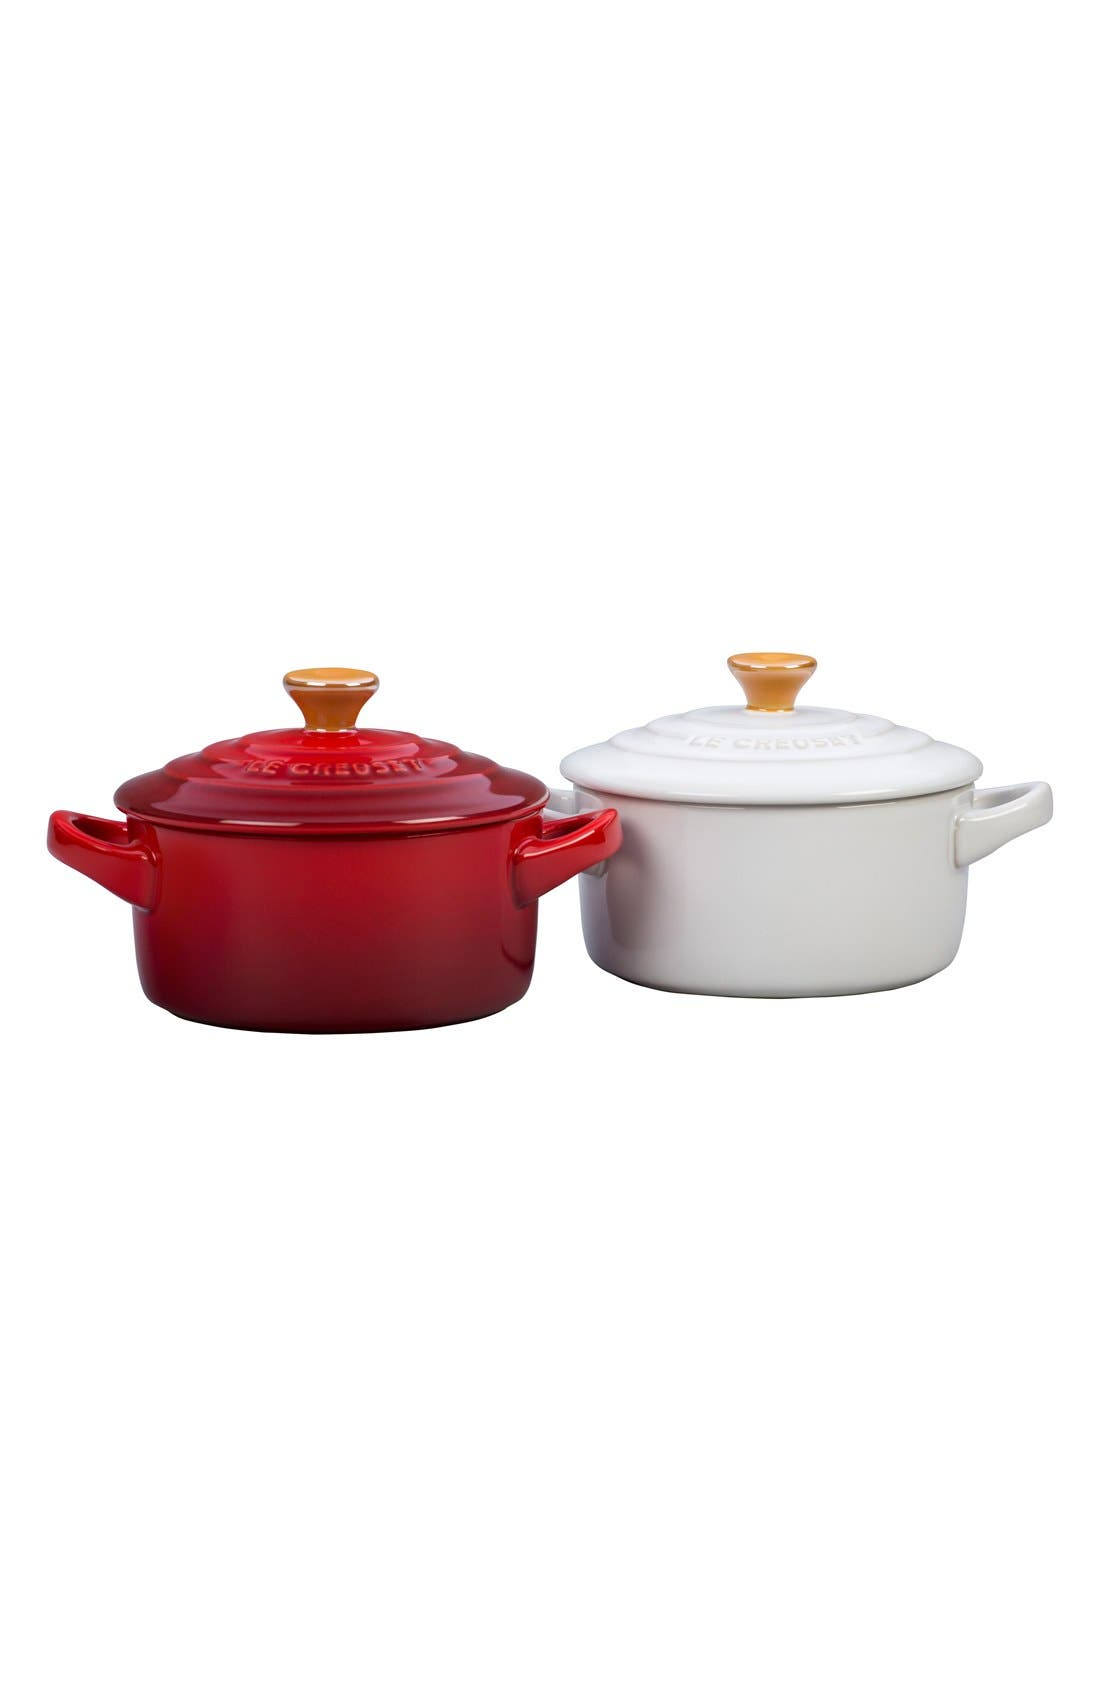 Le Creuset Set of Two 8 Ounce Mini Cocottes